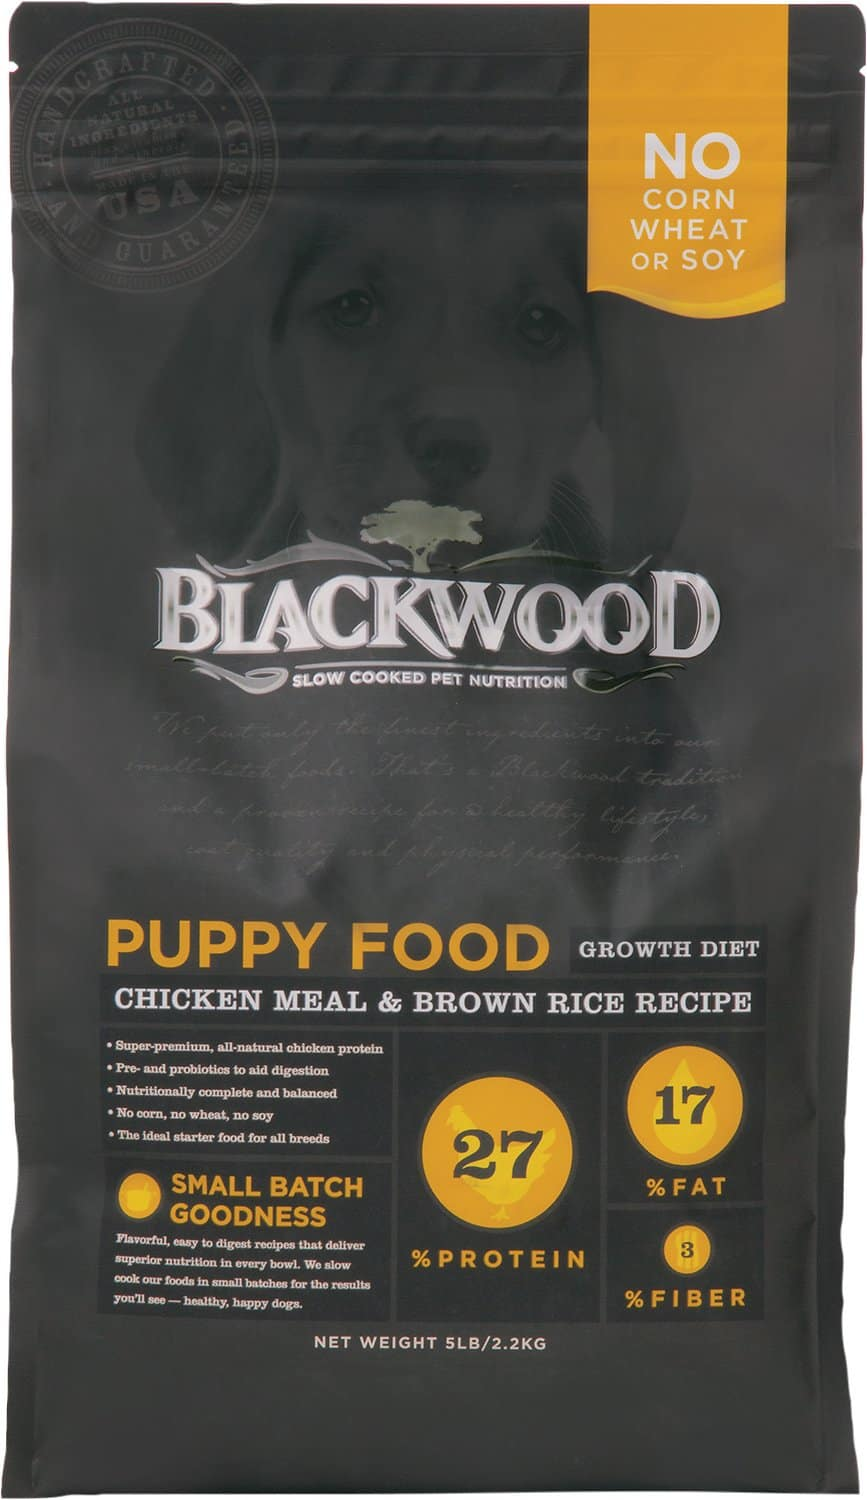 Blackwood Dog Food Review 2021: Best Slow Cooked Pet Nutrition? 16